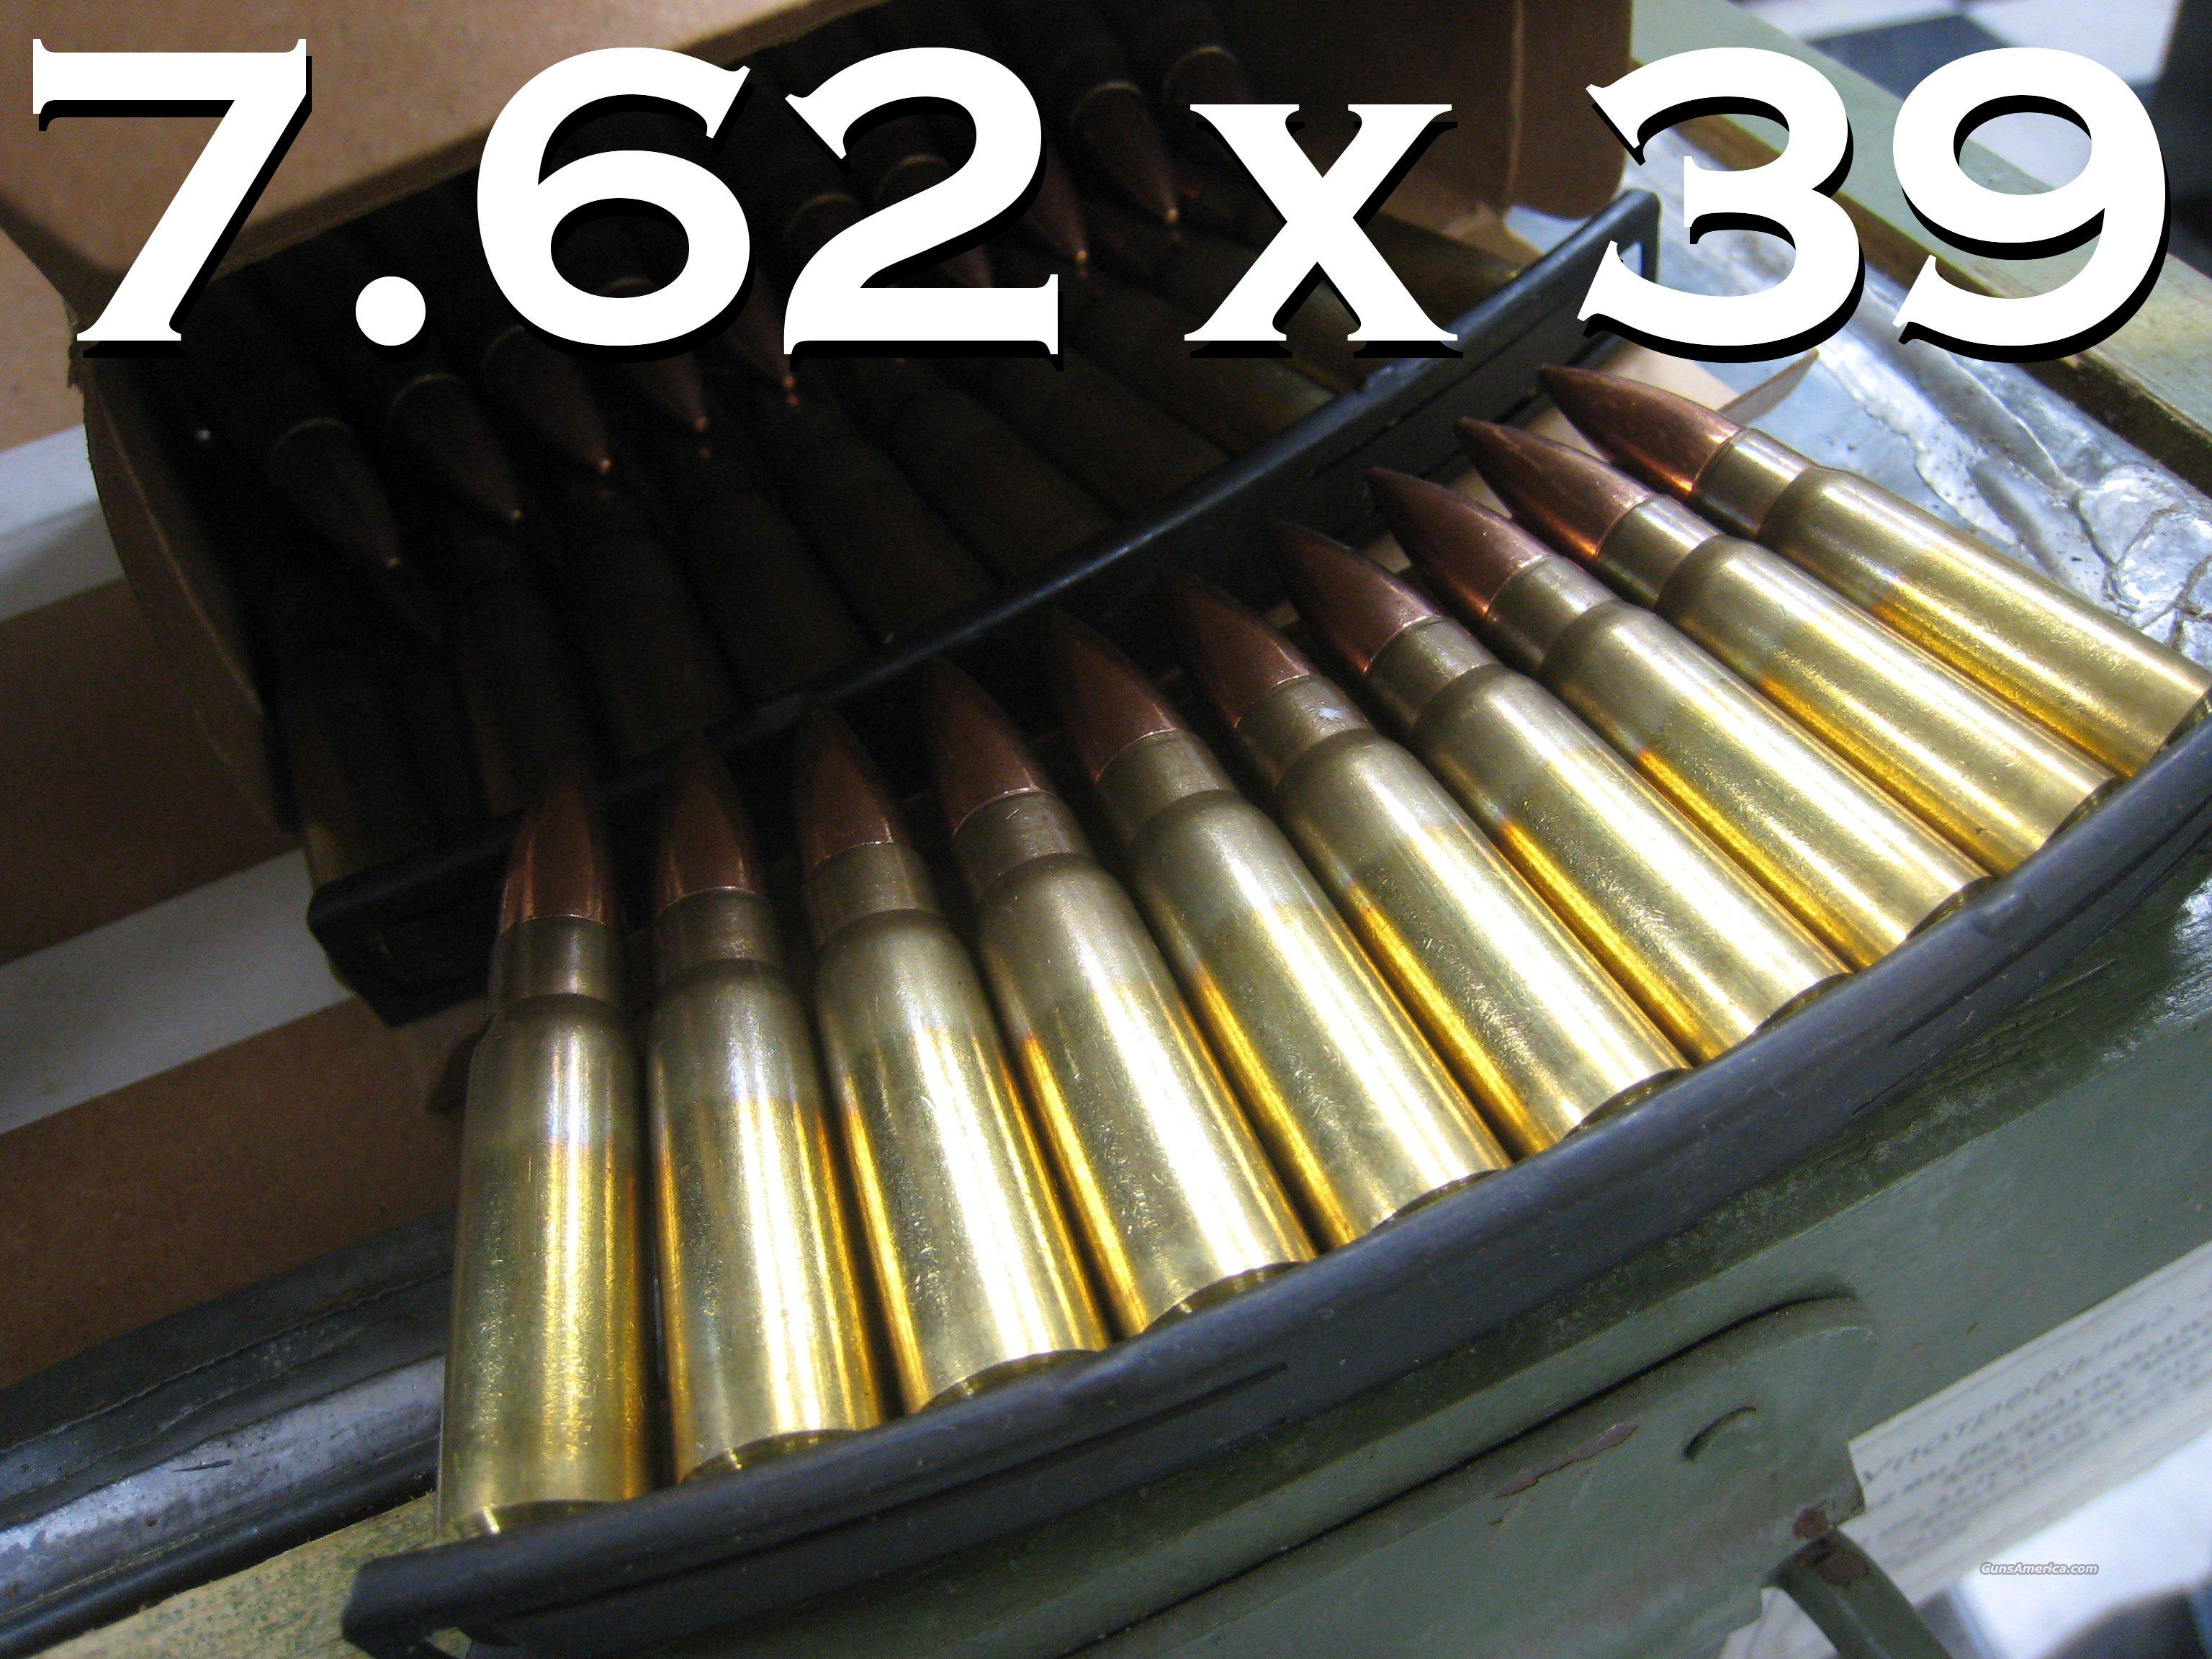 7.62x39 Yugo Military on Stripper Clips - BY THE CASE - AVAILABLE NOW!  Non-Guns > Ammunition